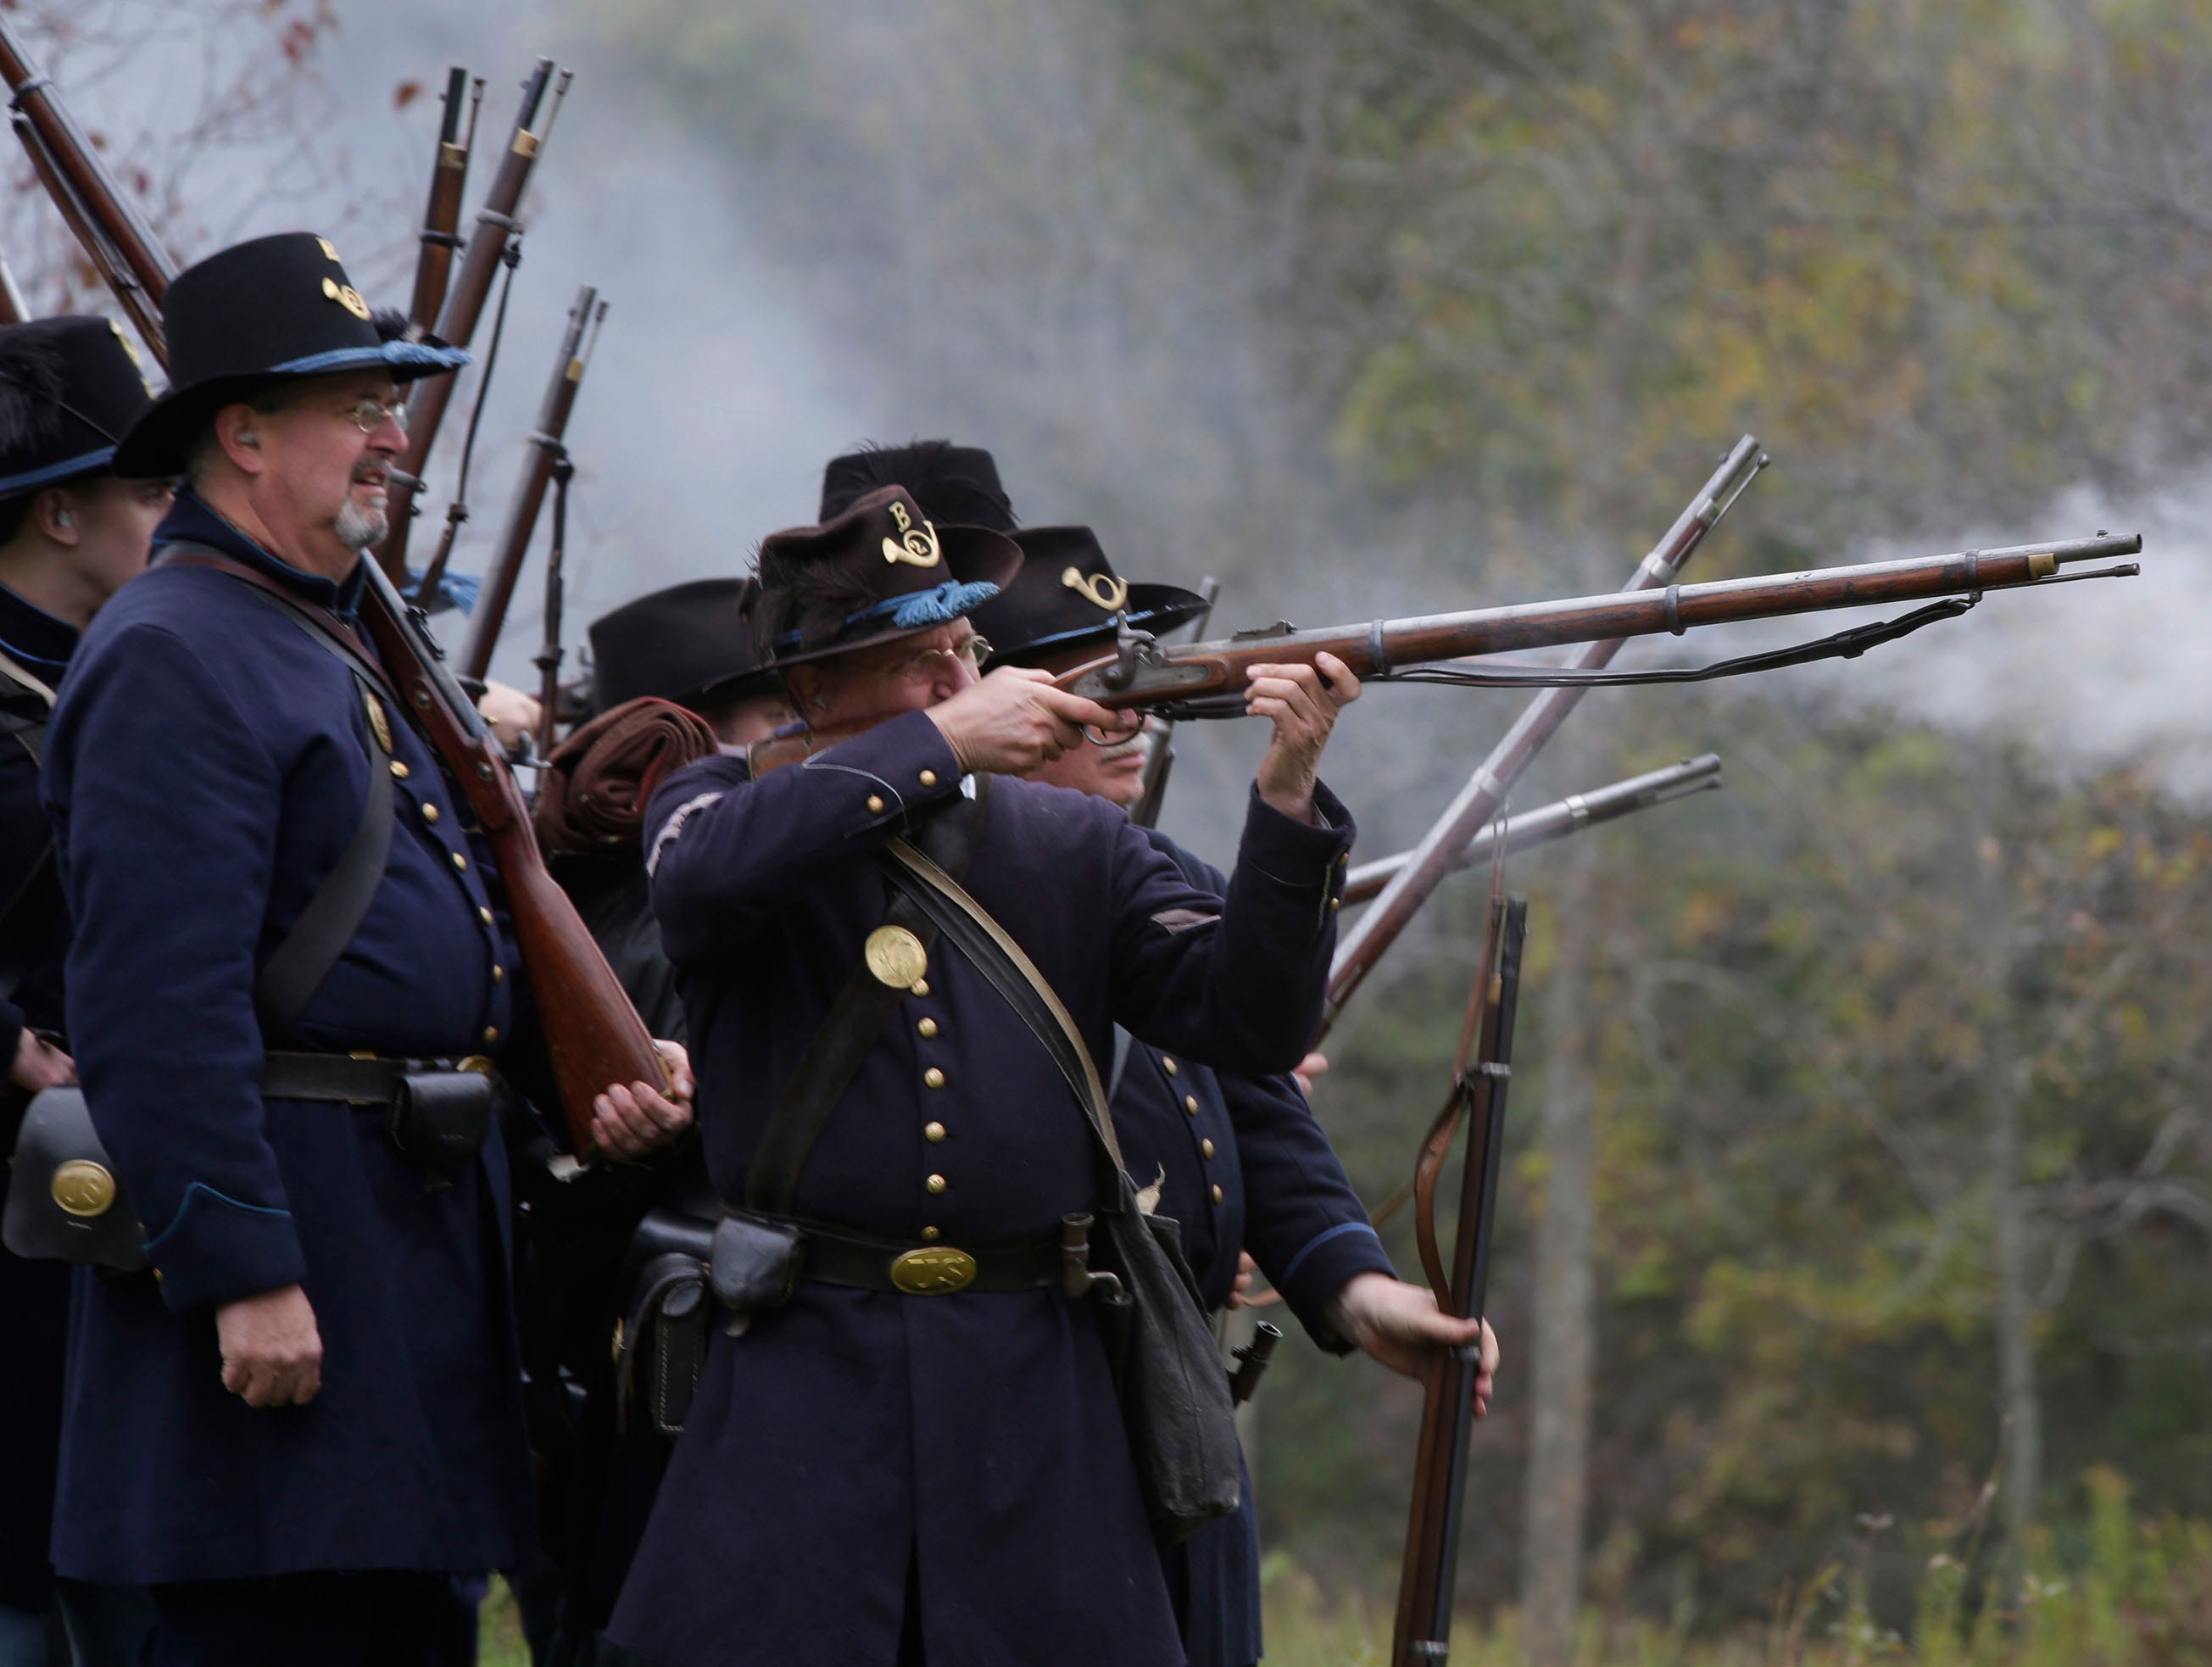 Union soldiers take aim during the Civil War Weekend at the Wade House, Saturday September 29, 2018, in Greenbush, Wis.